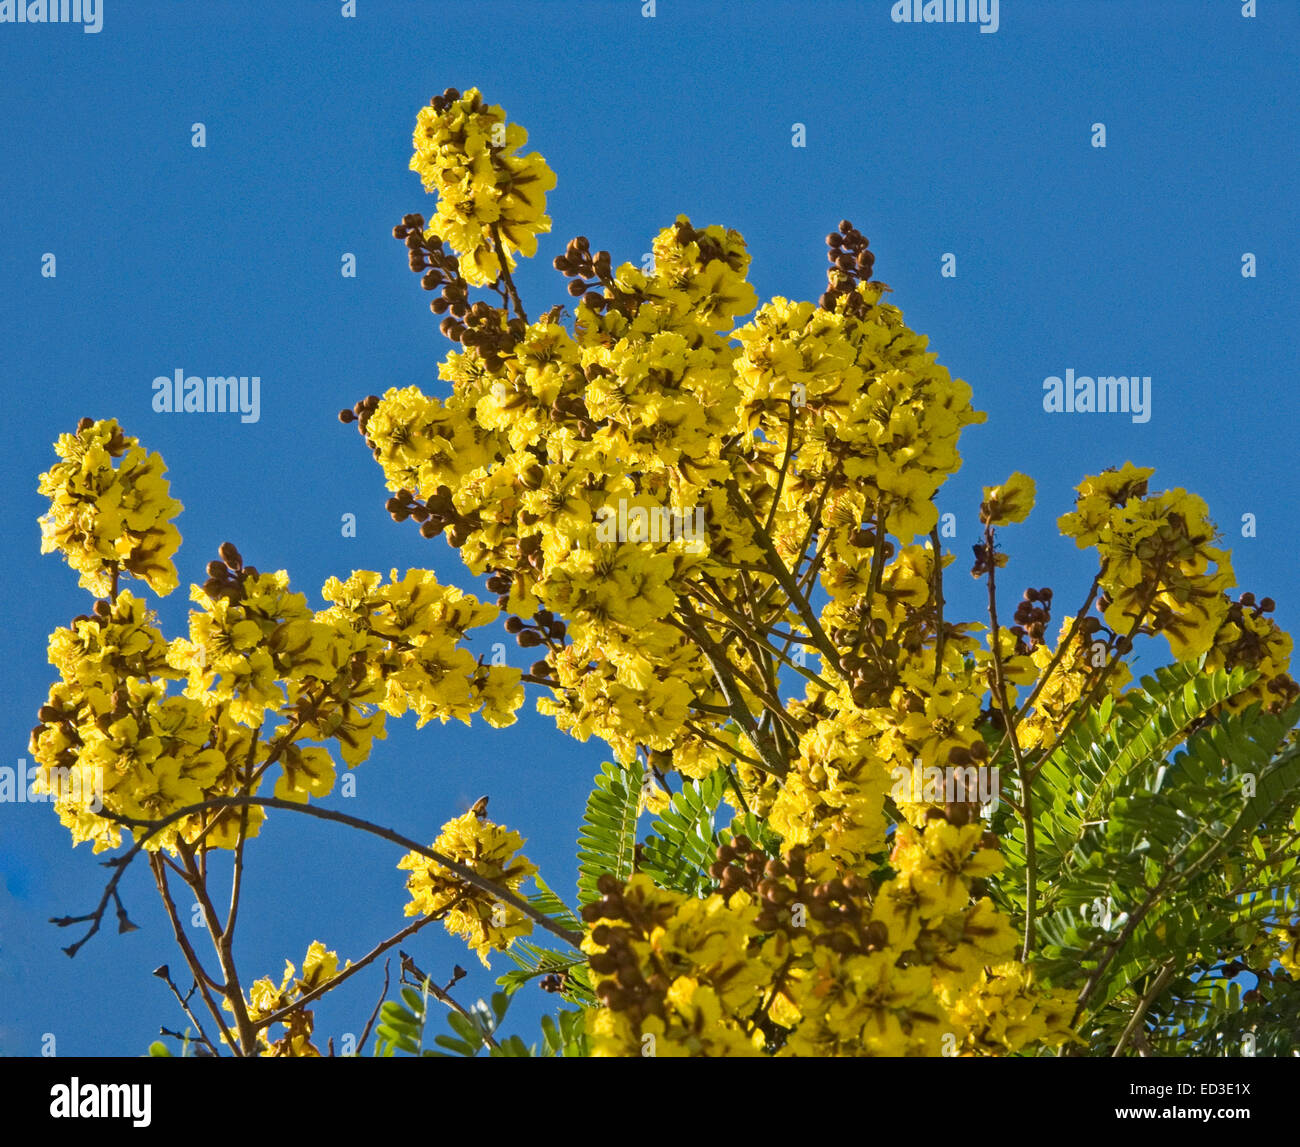 Large clusters of bright yellow flowers leaves of peltophorum large clusters of bright yellow flowers leaves of peltophorum pterocarpum an australian native tree against vivid blue sky mightylinksfo